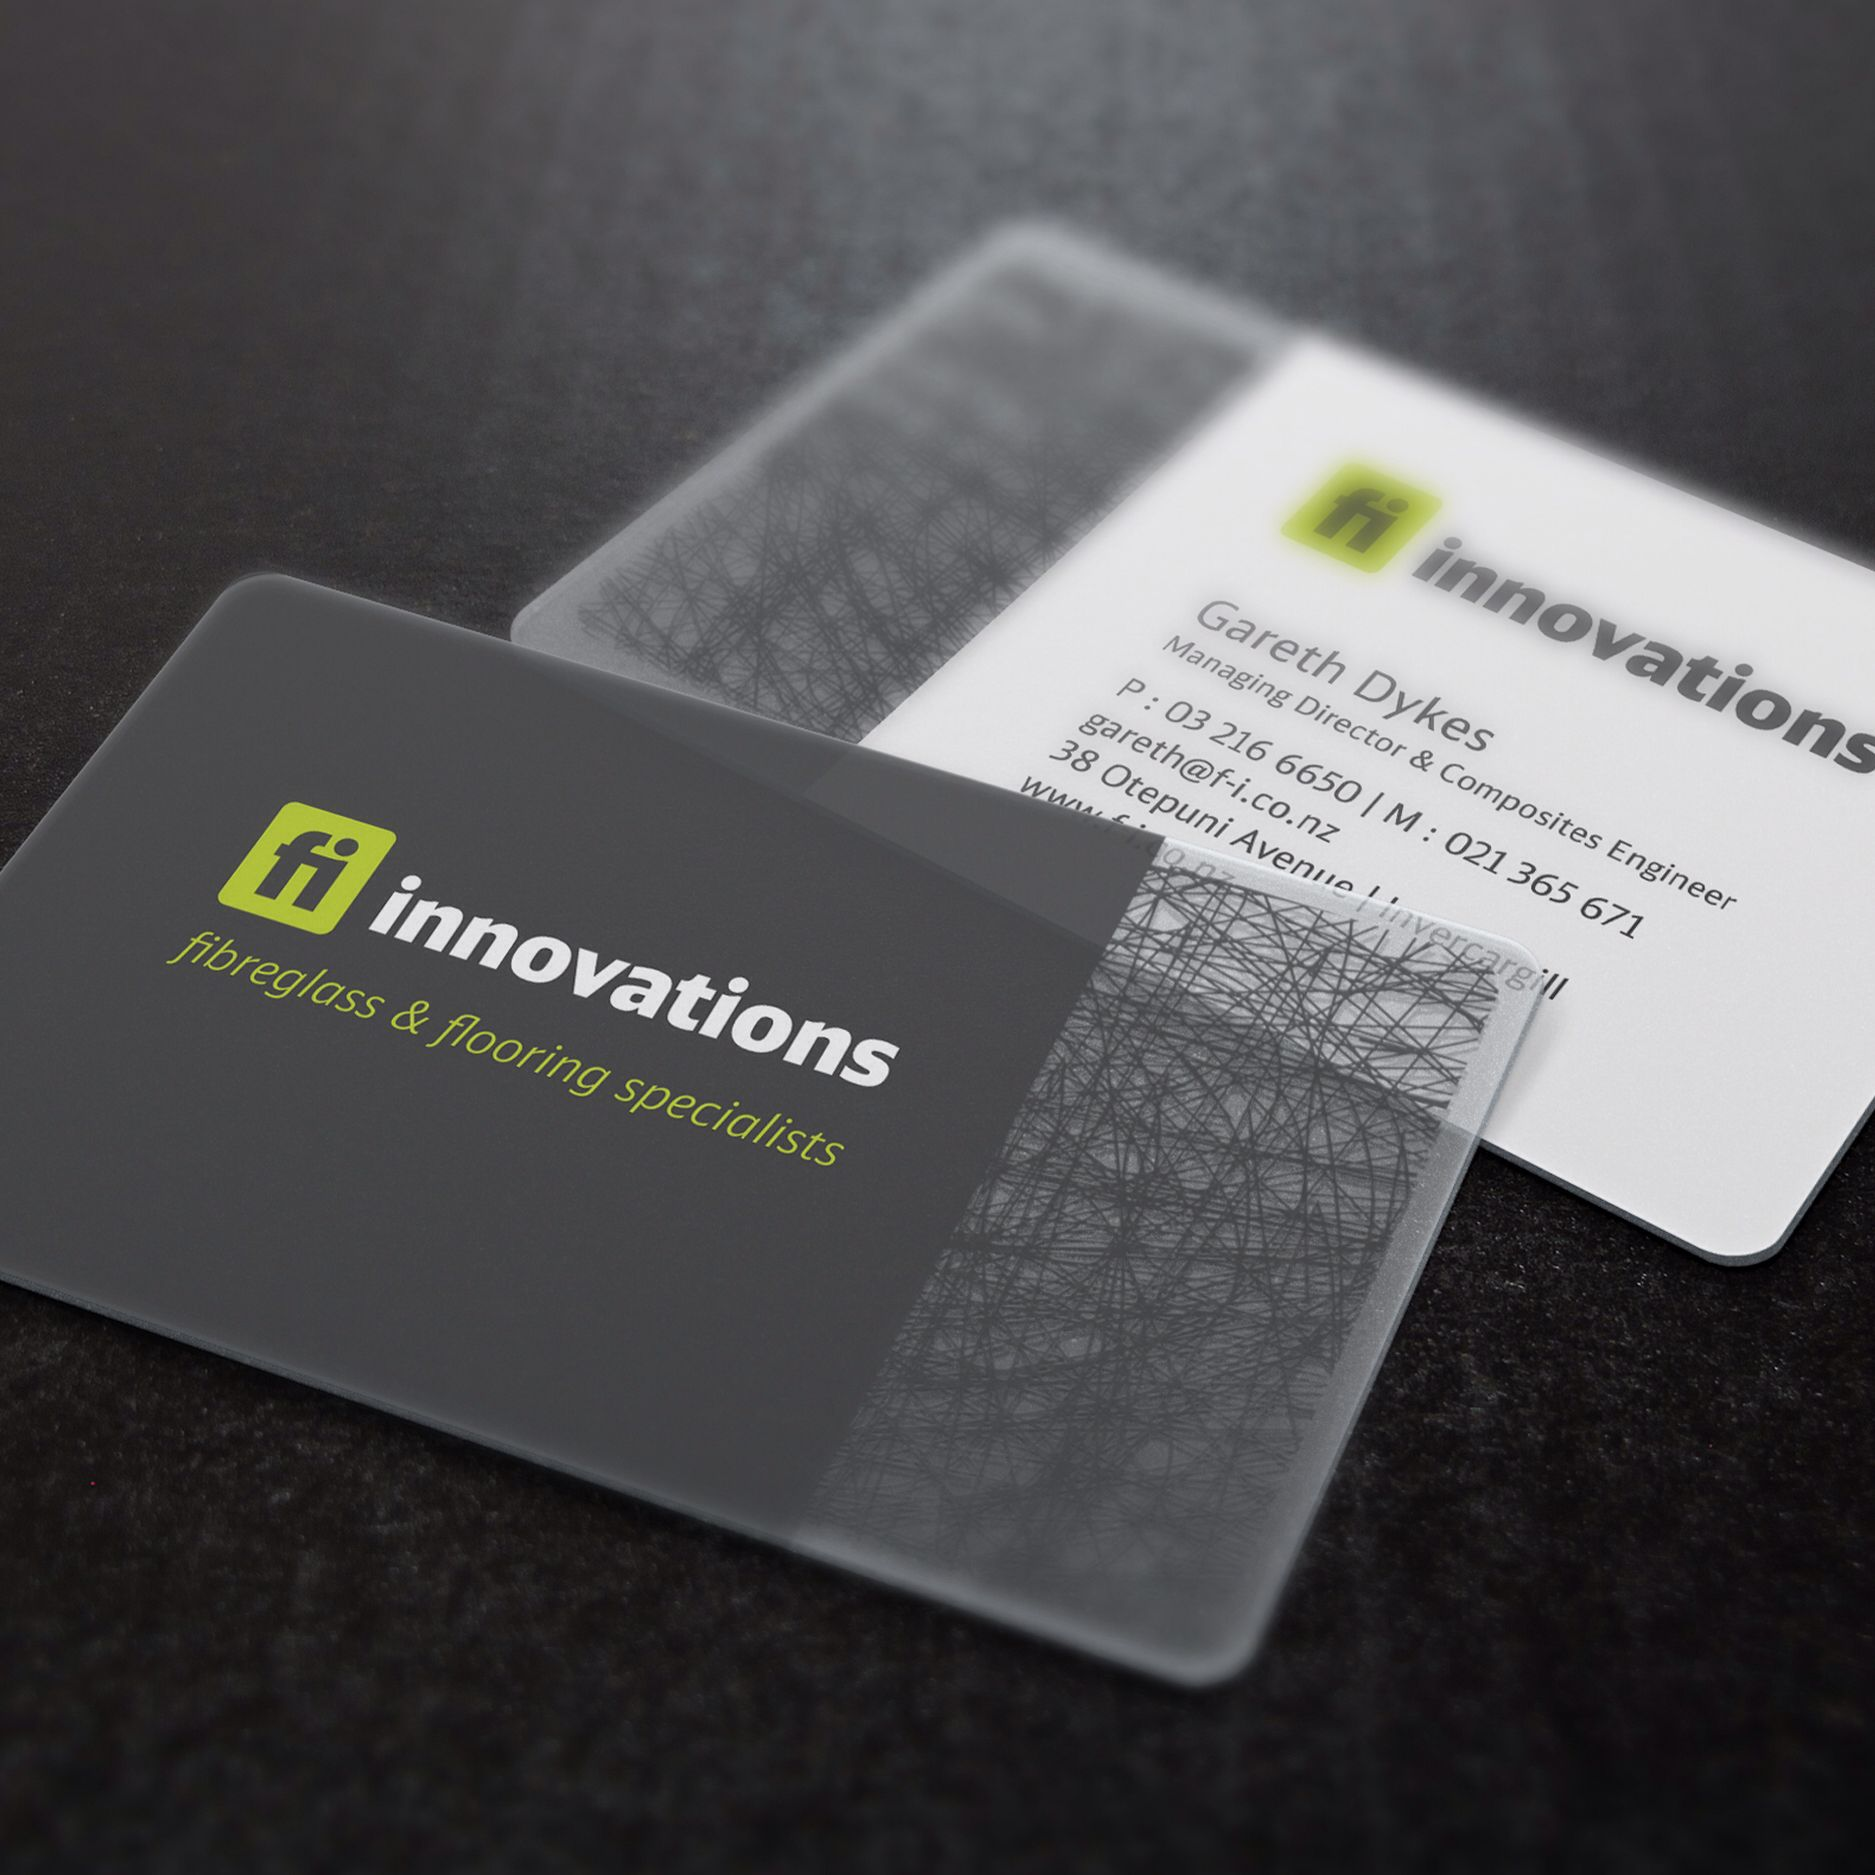 Magnificent business card transparent ideas business card ideas fibreglass innovation transparent business cards print design reheart Image collections